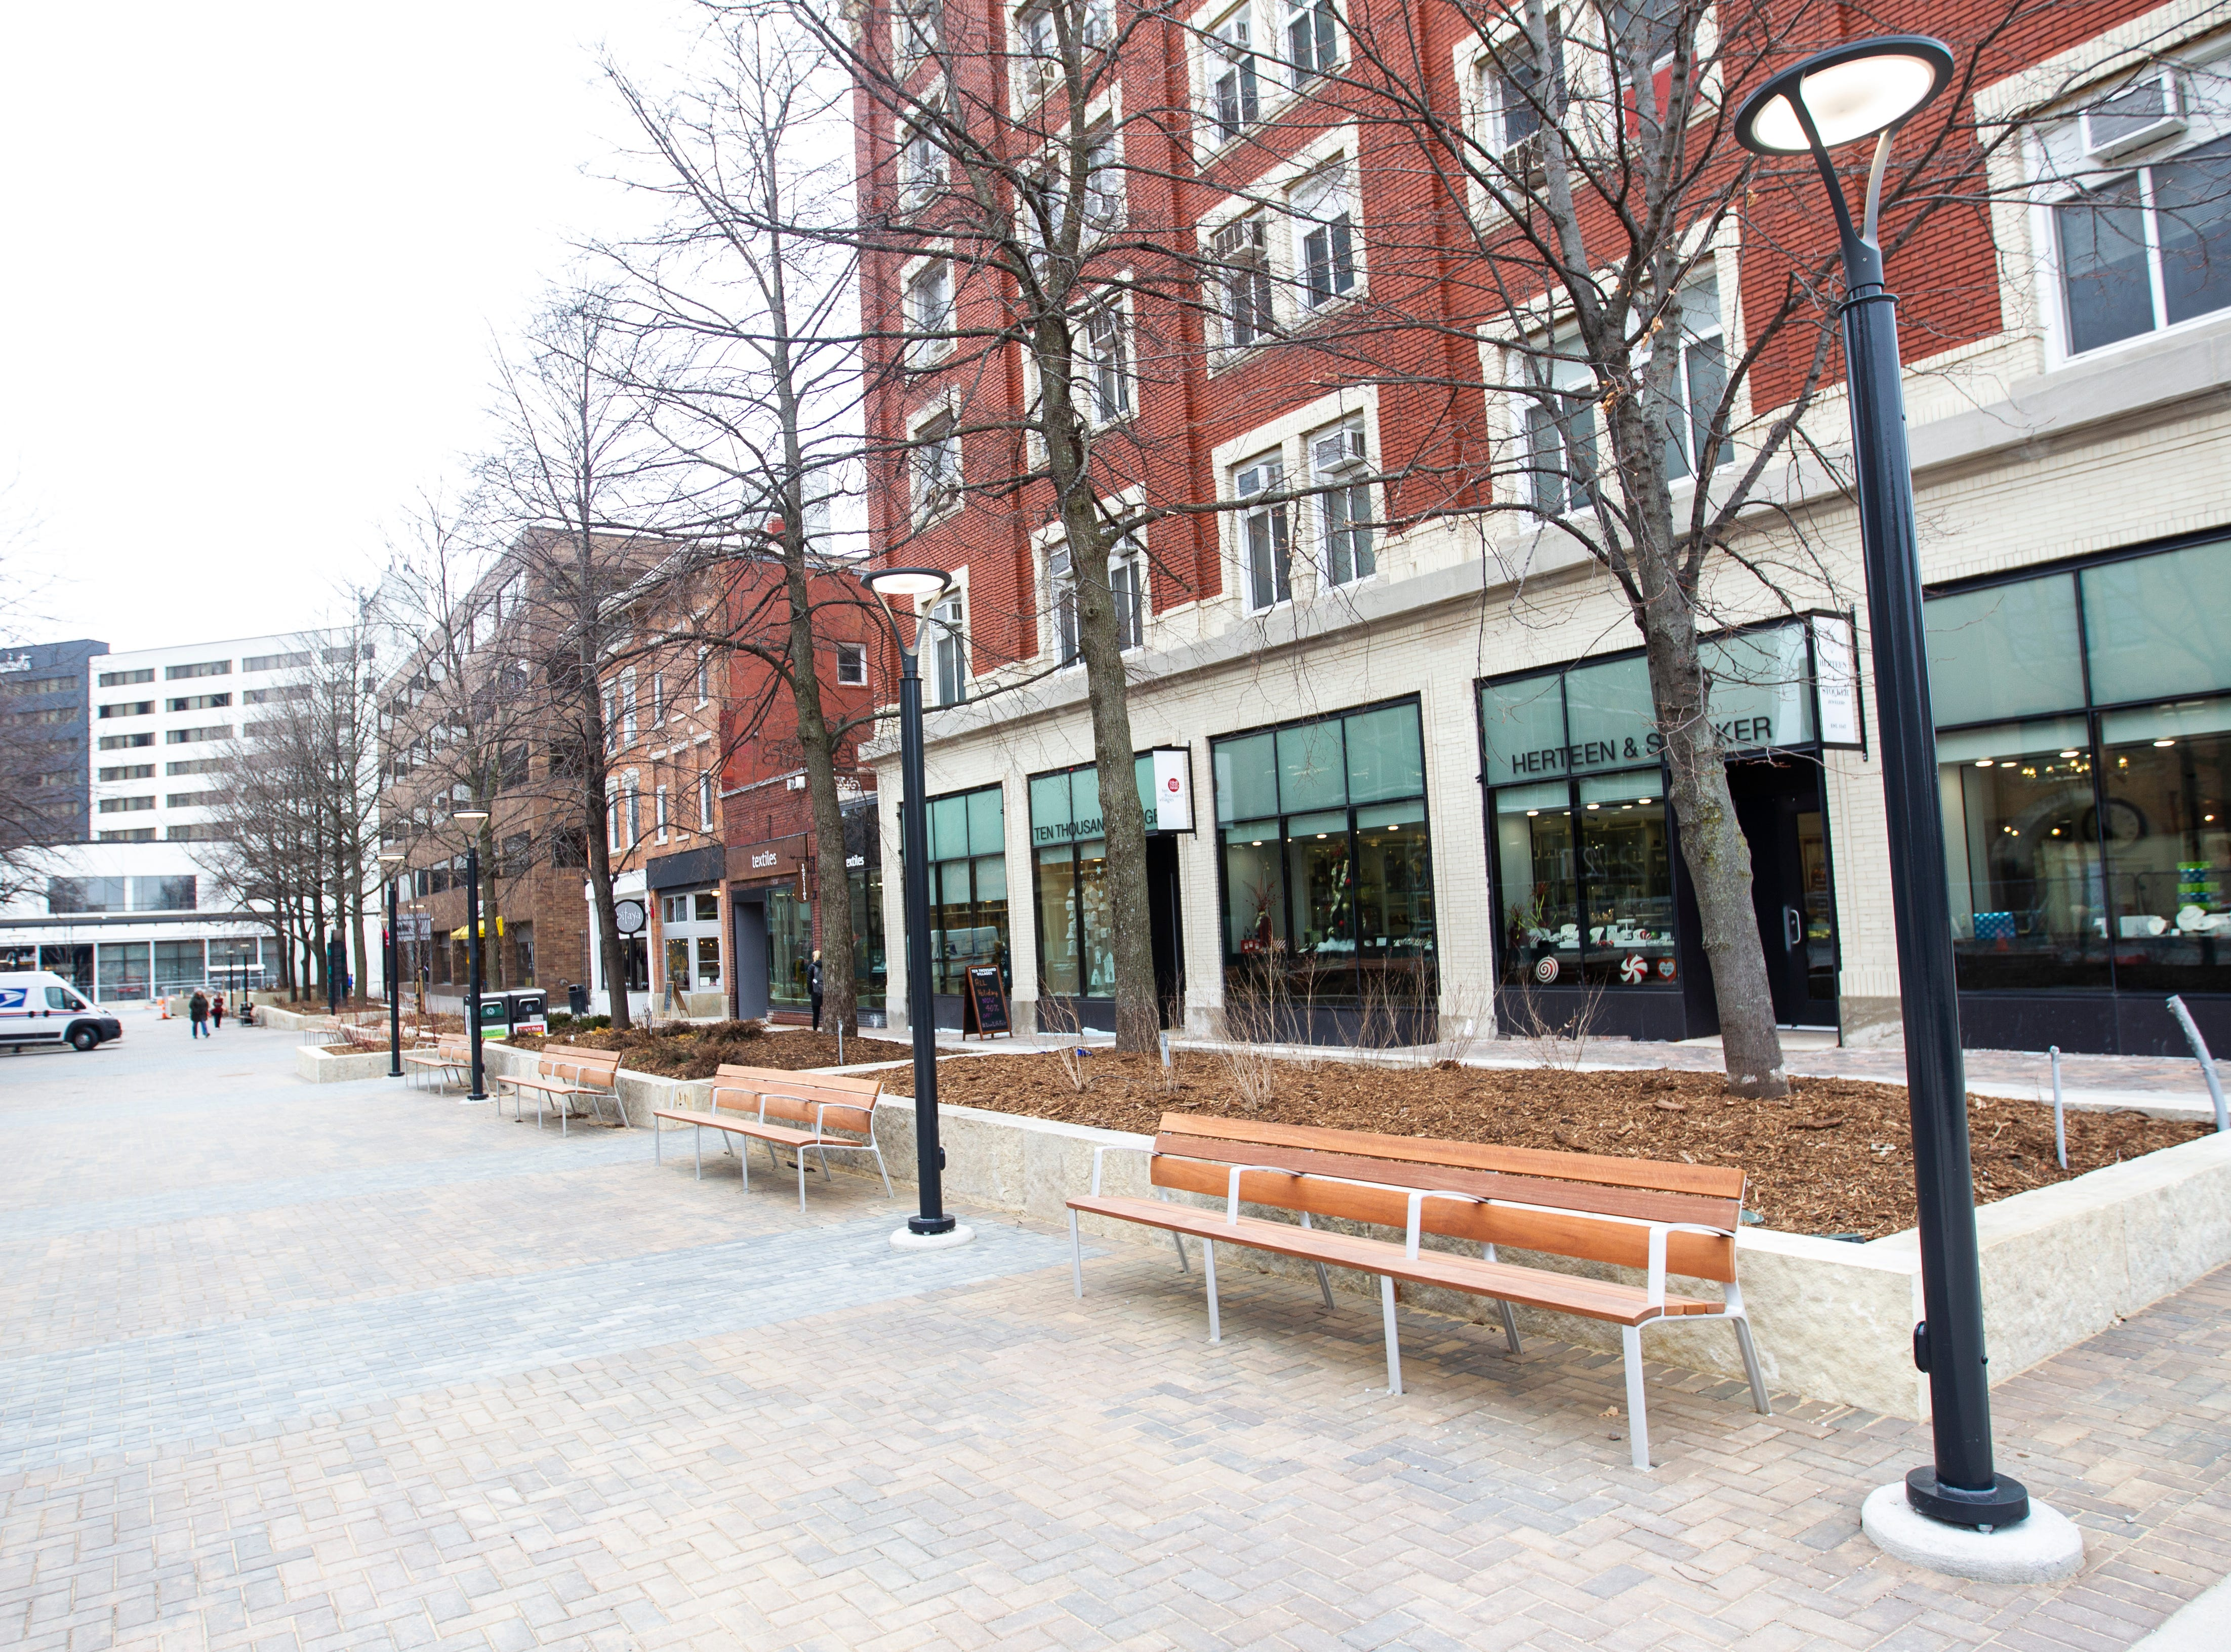 New benches with handrails are seen on Friday, Jan. 11, 2019, along the pedestrian mall in downtown Iowa City, Iowa.